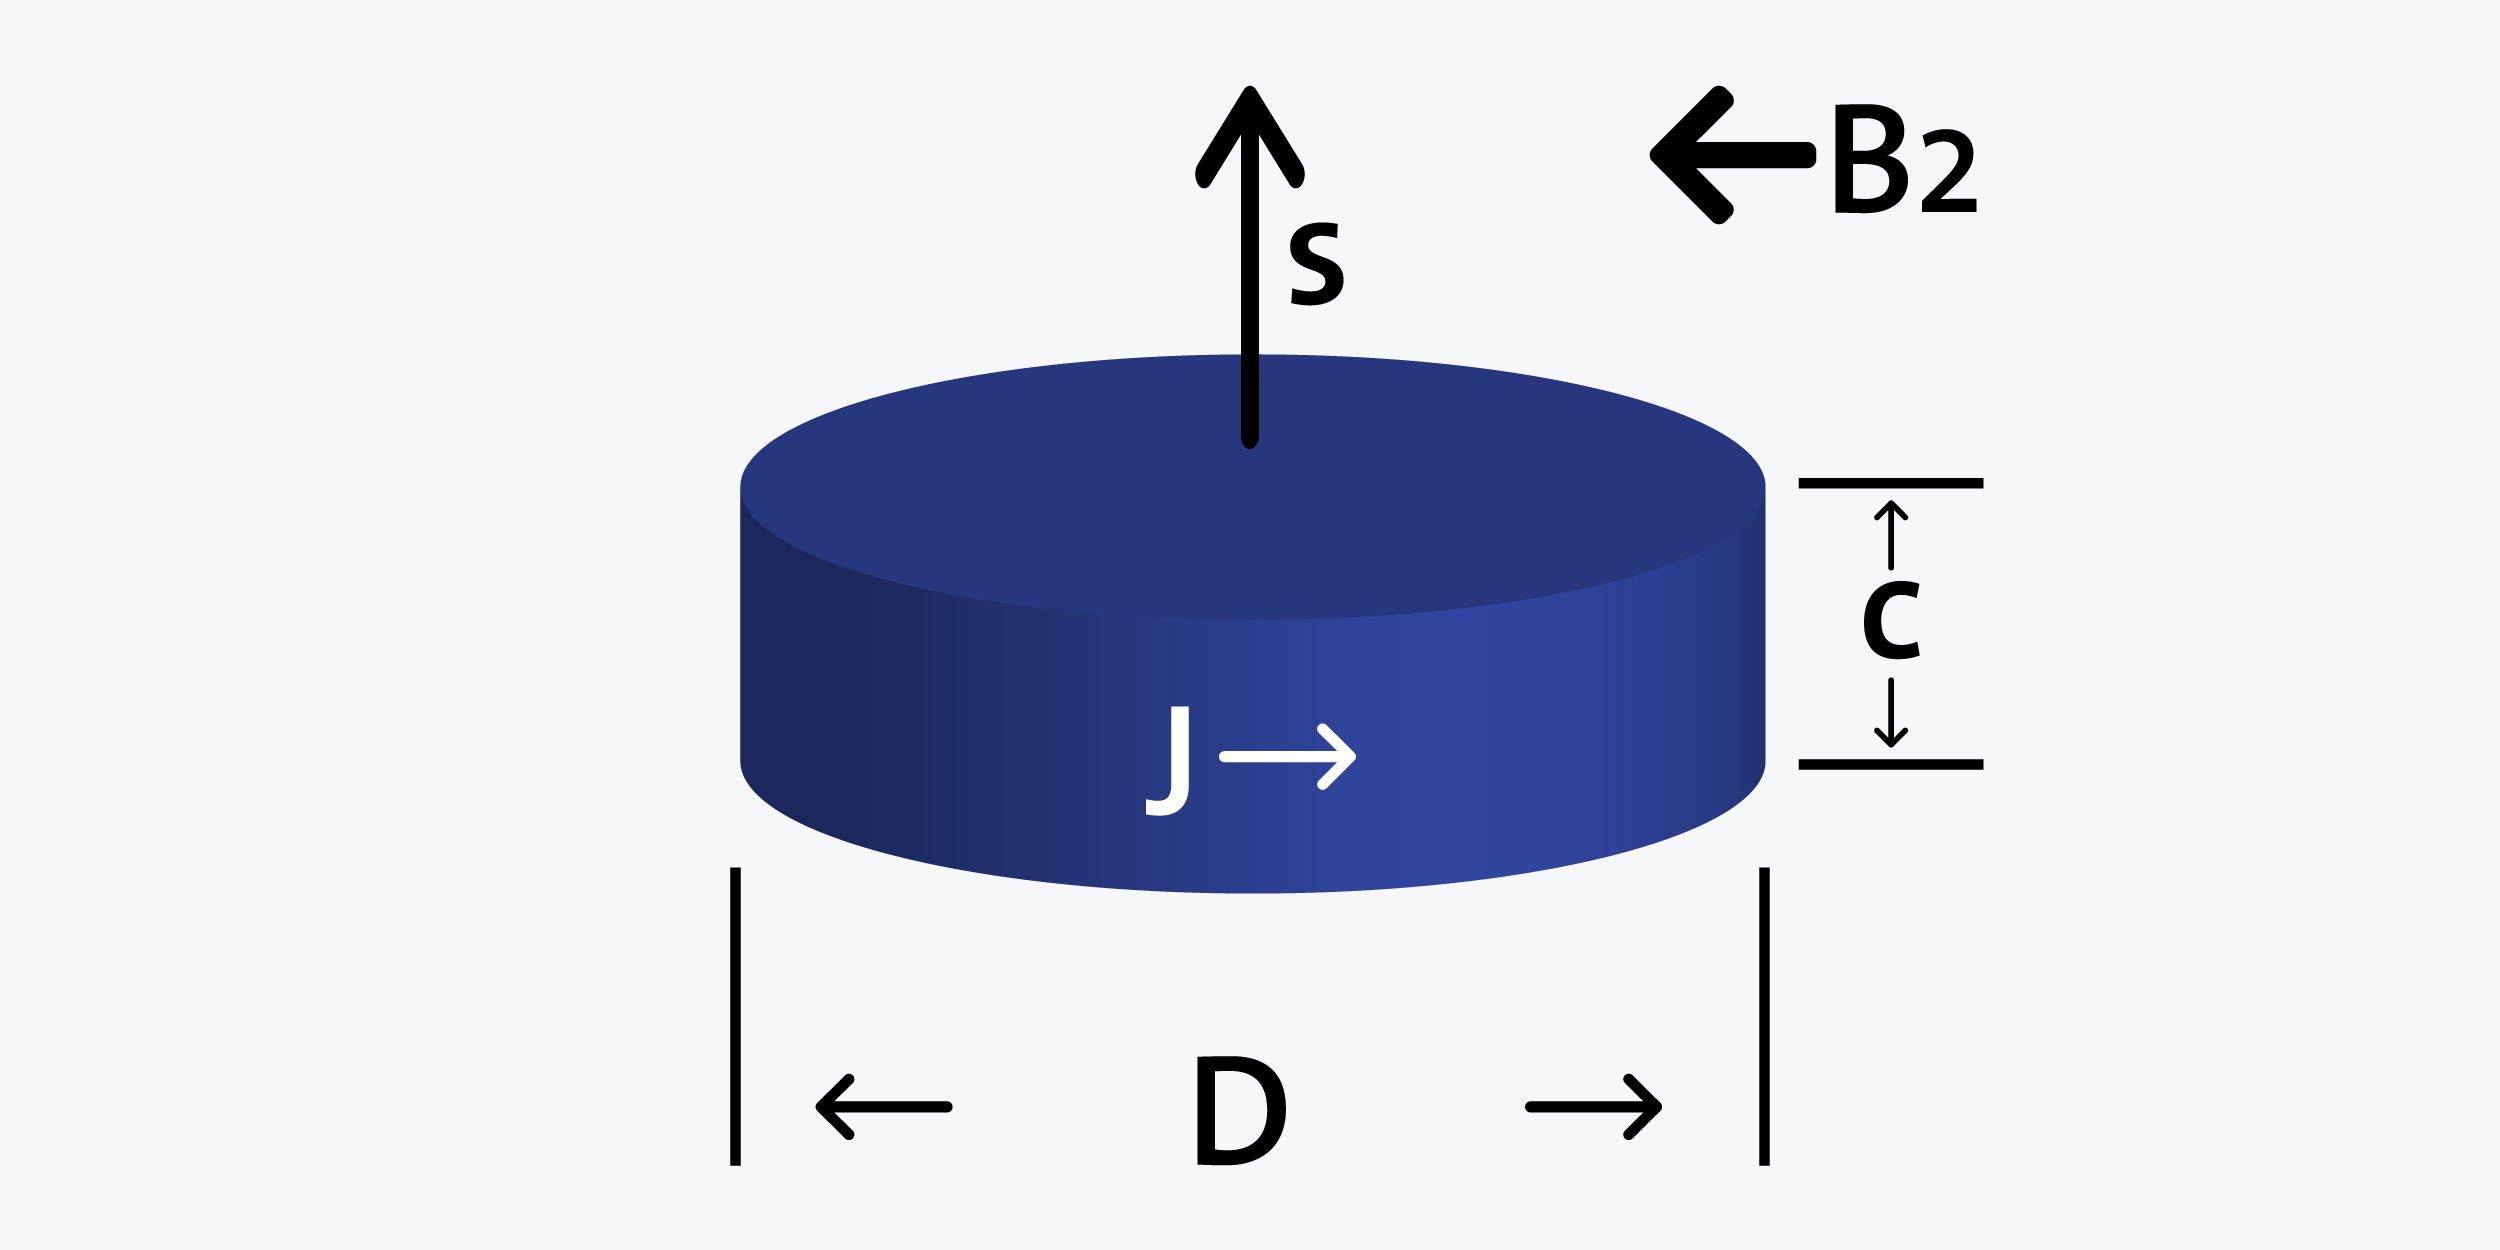 Disk - Diametrically magnetized